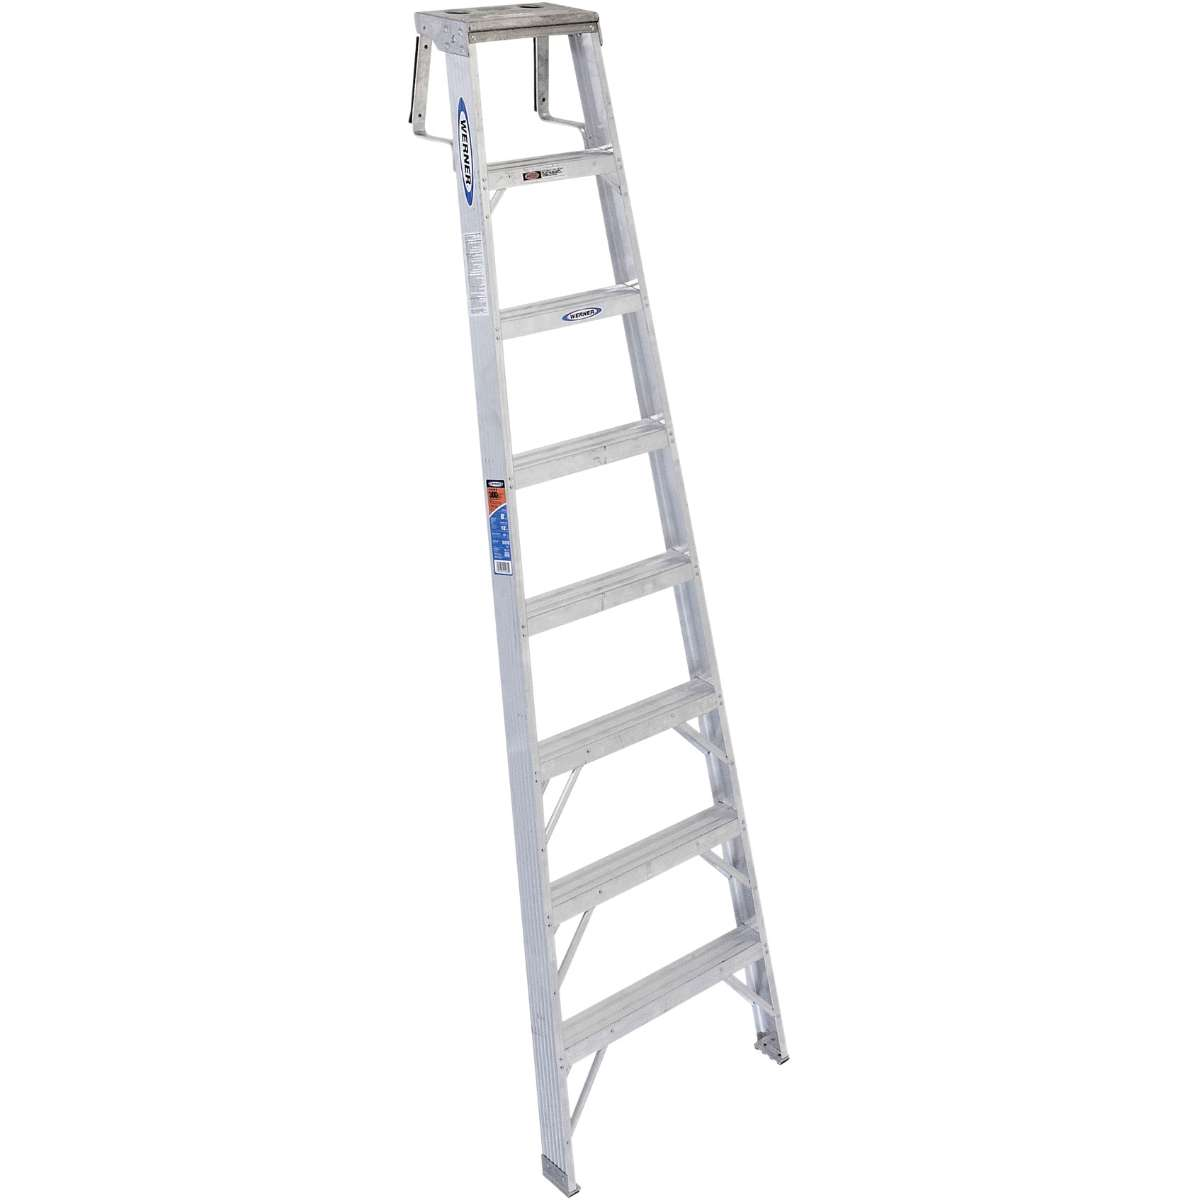 Aluminum Shelf Ladder - 300 lb. Capacity (SH378)